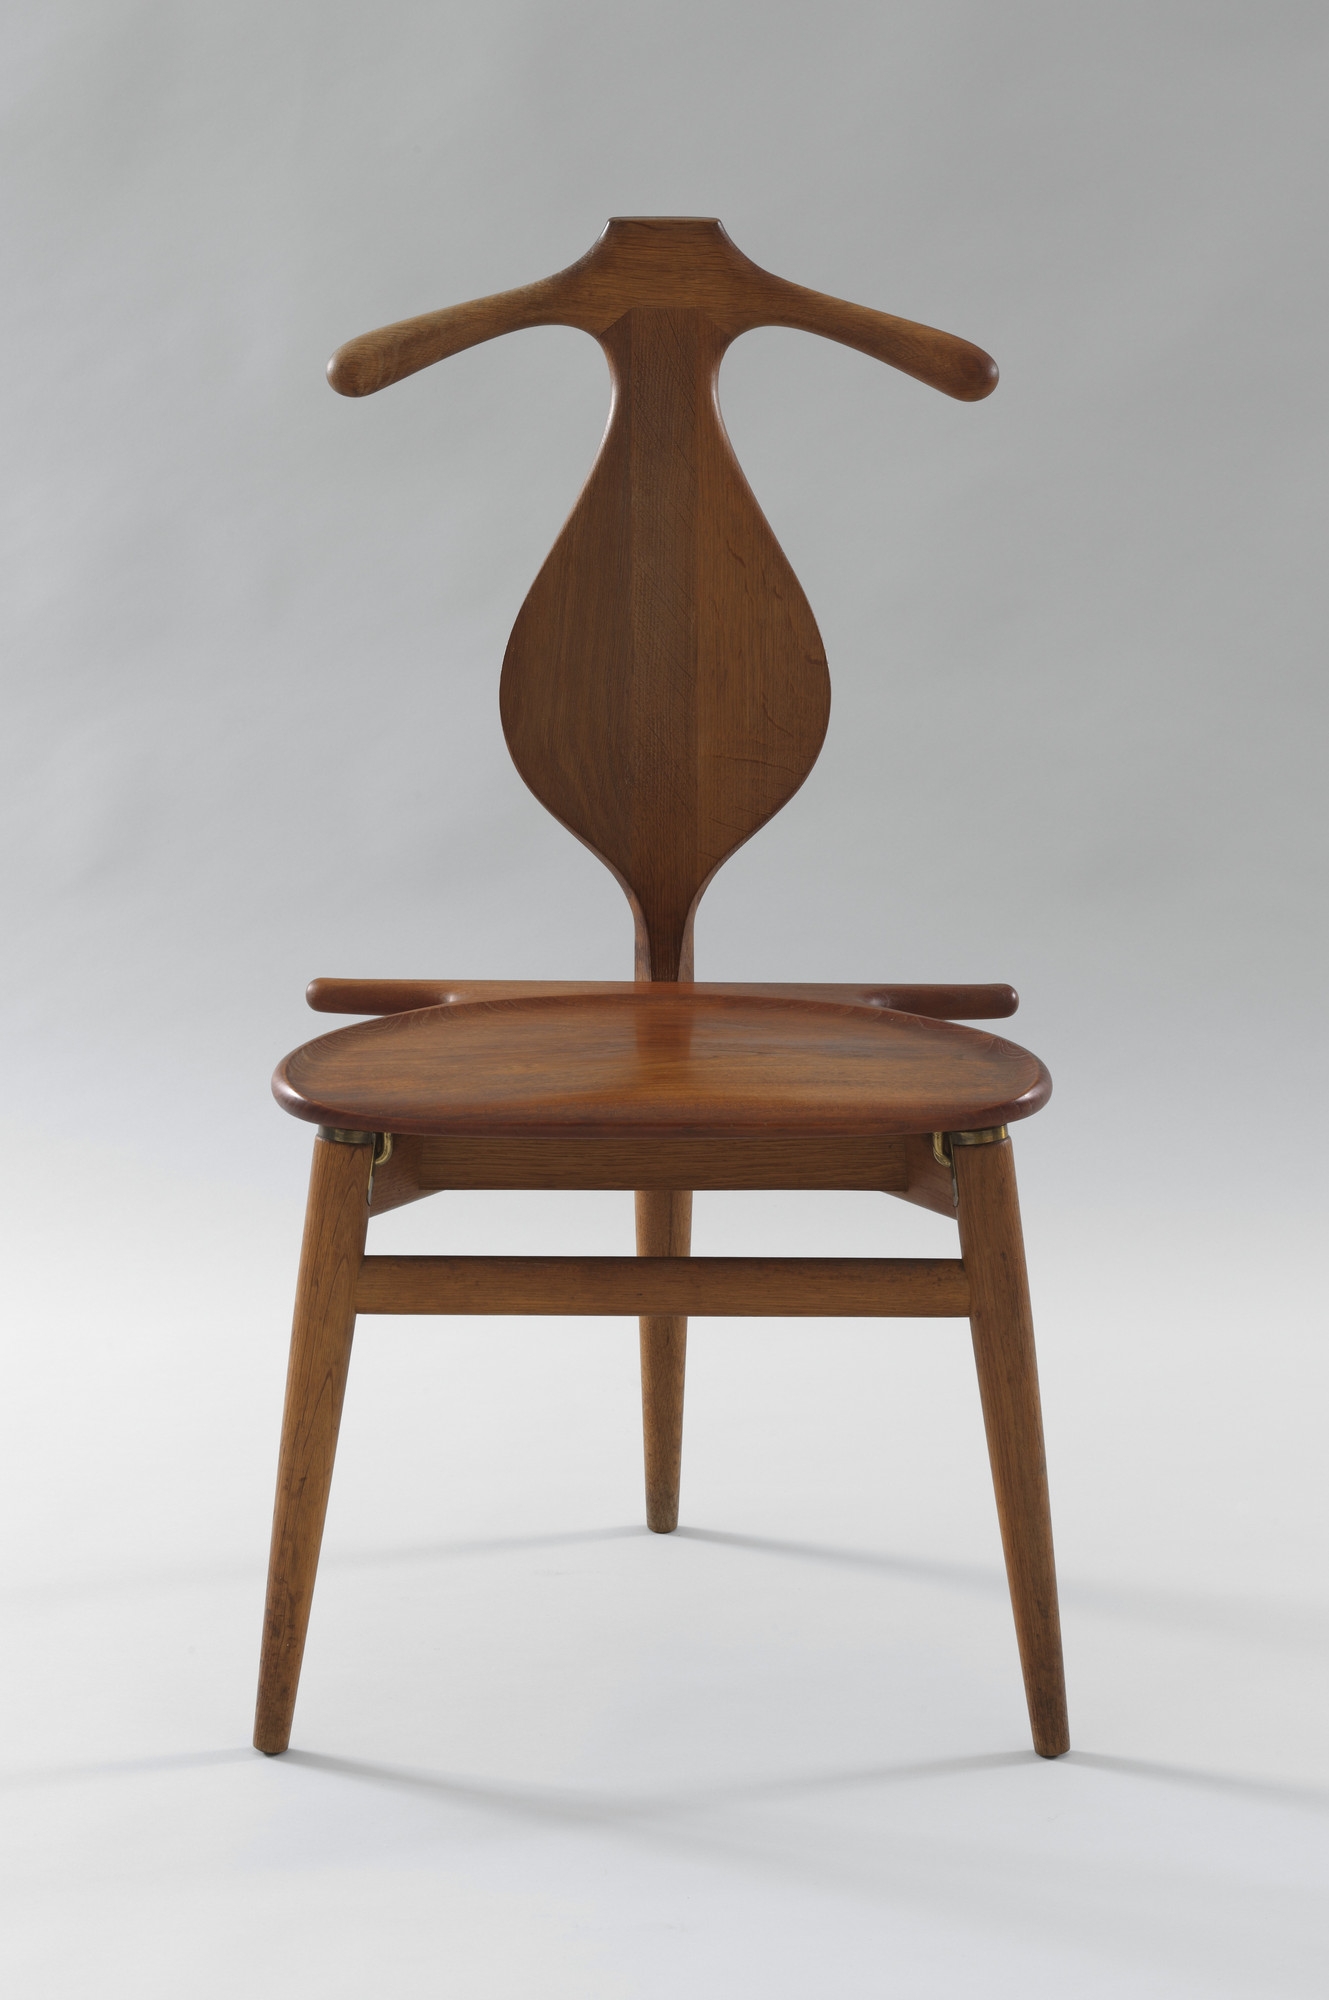 Hans Wegner. Valet Chair. c. 1950